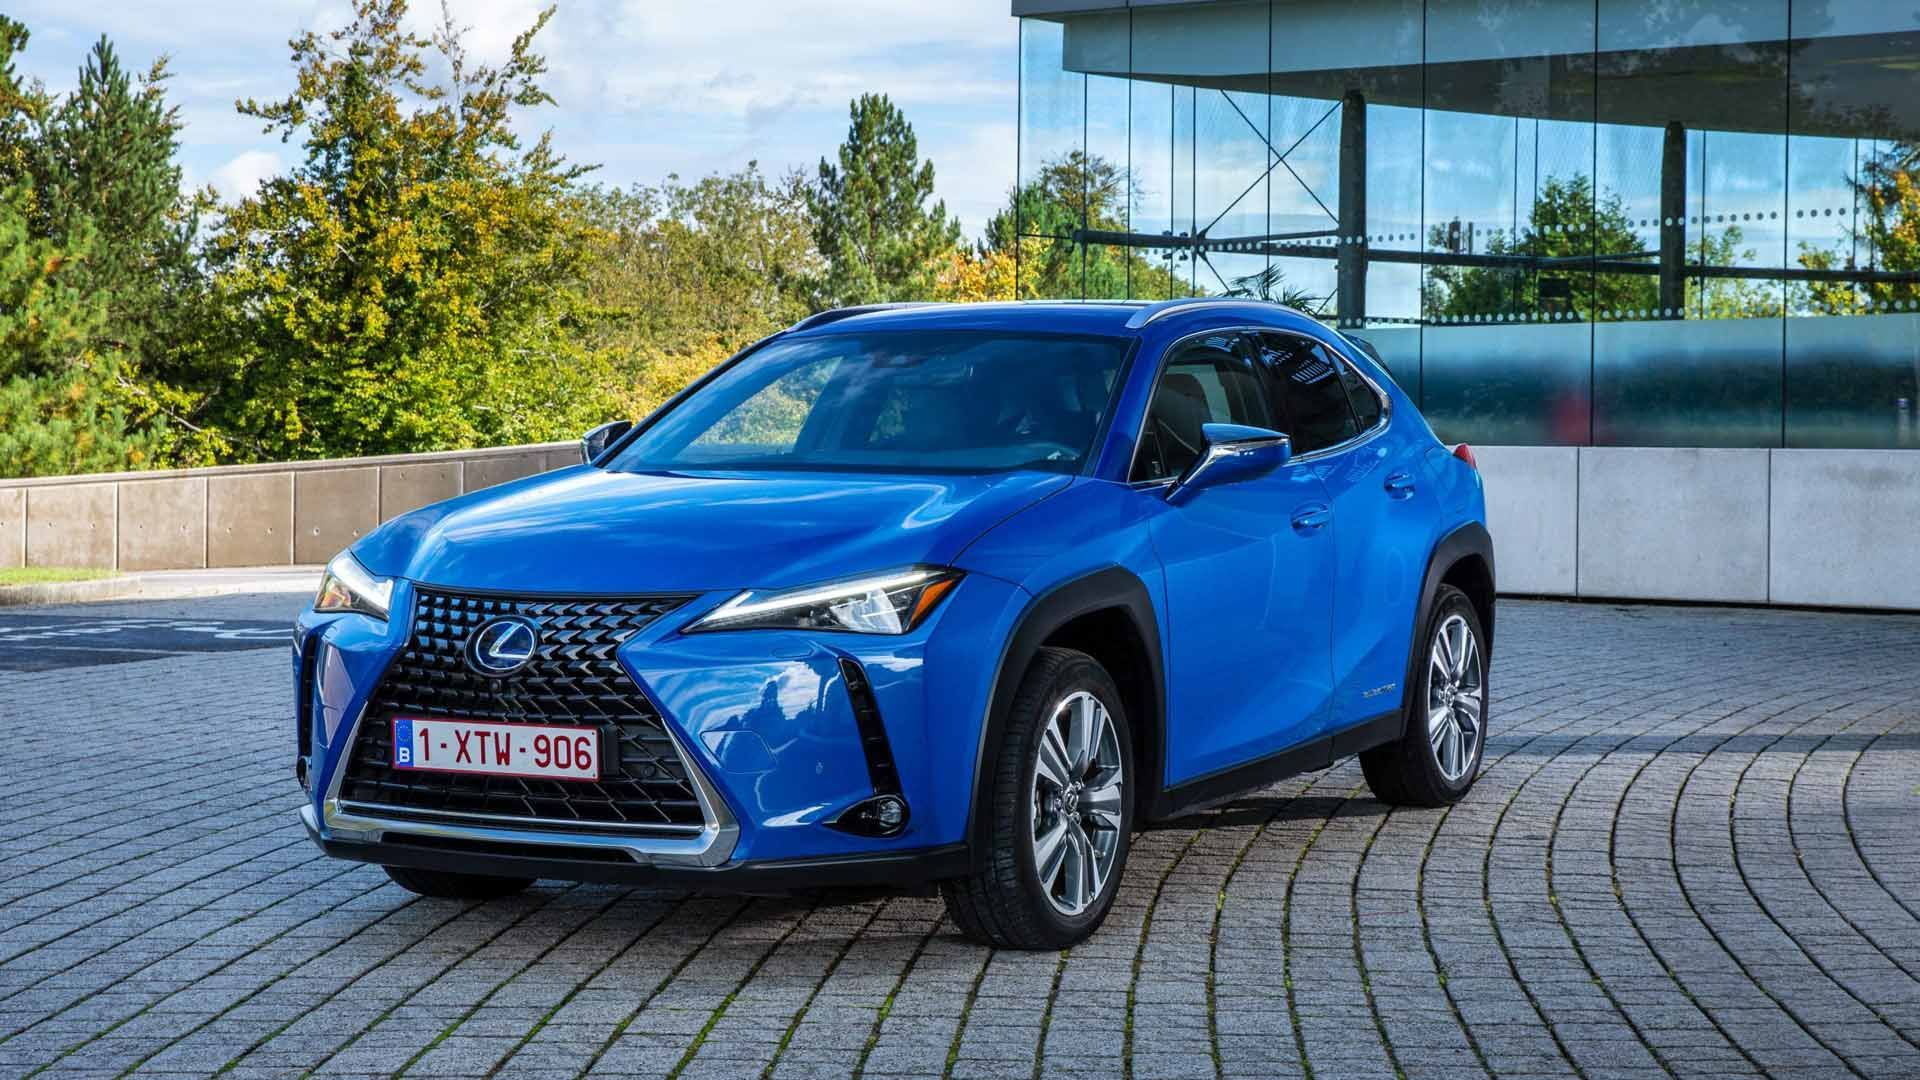 Hybrid Petrol Electric Lexus Ux 250h Suv Used Cars For Sale Autotrader Uk